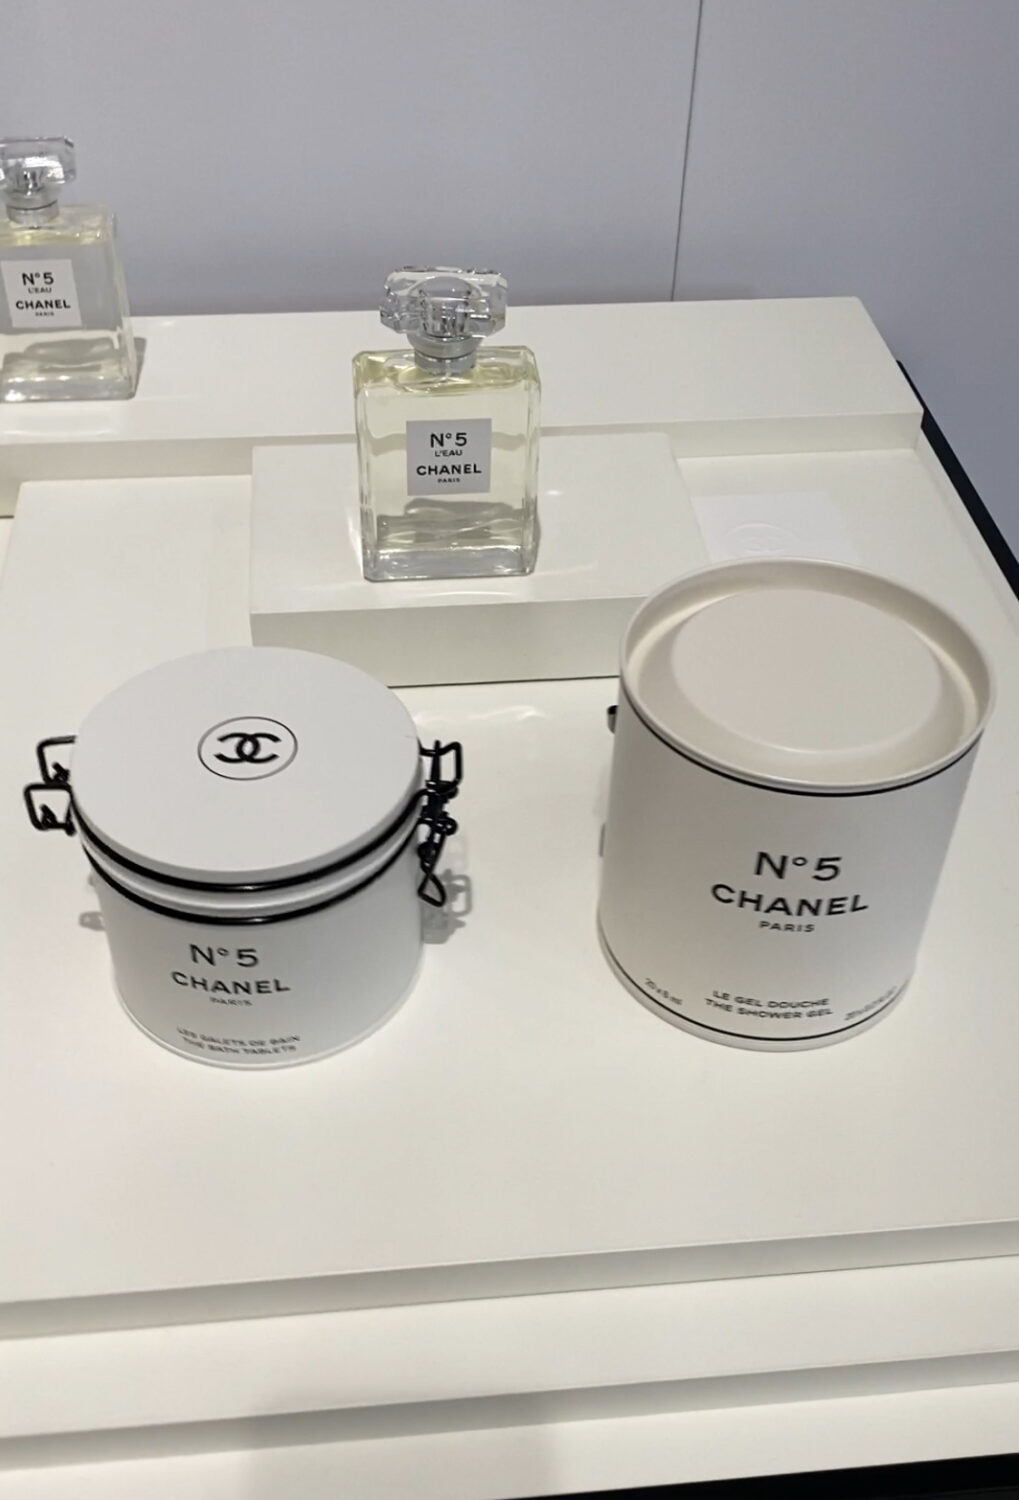 Just-take-a-look Berlin - Chanel Factory 5 - 4